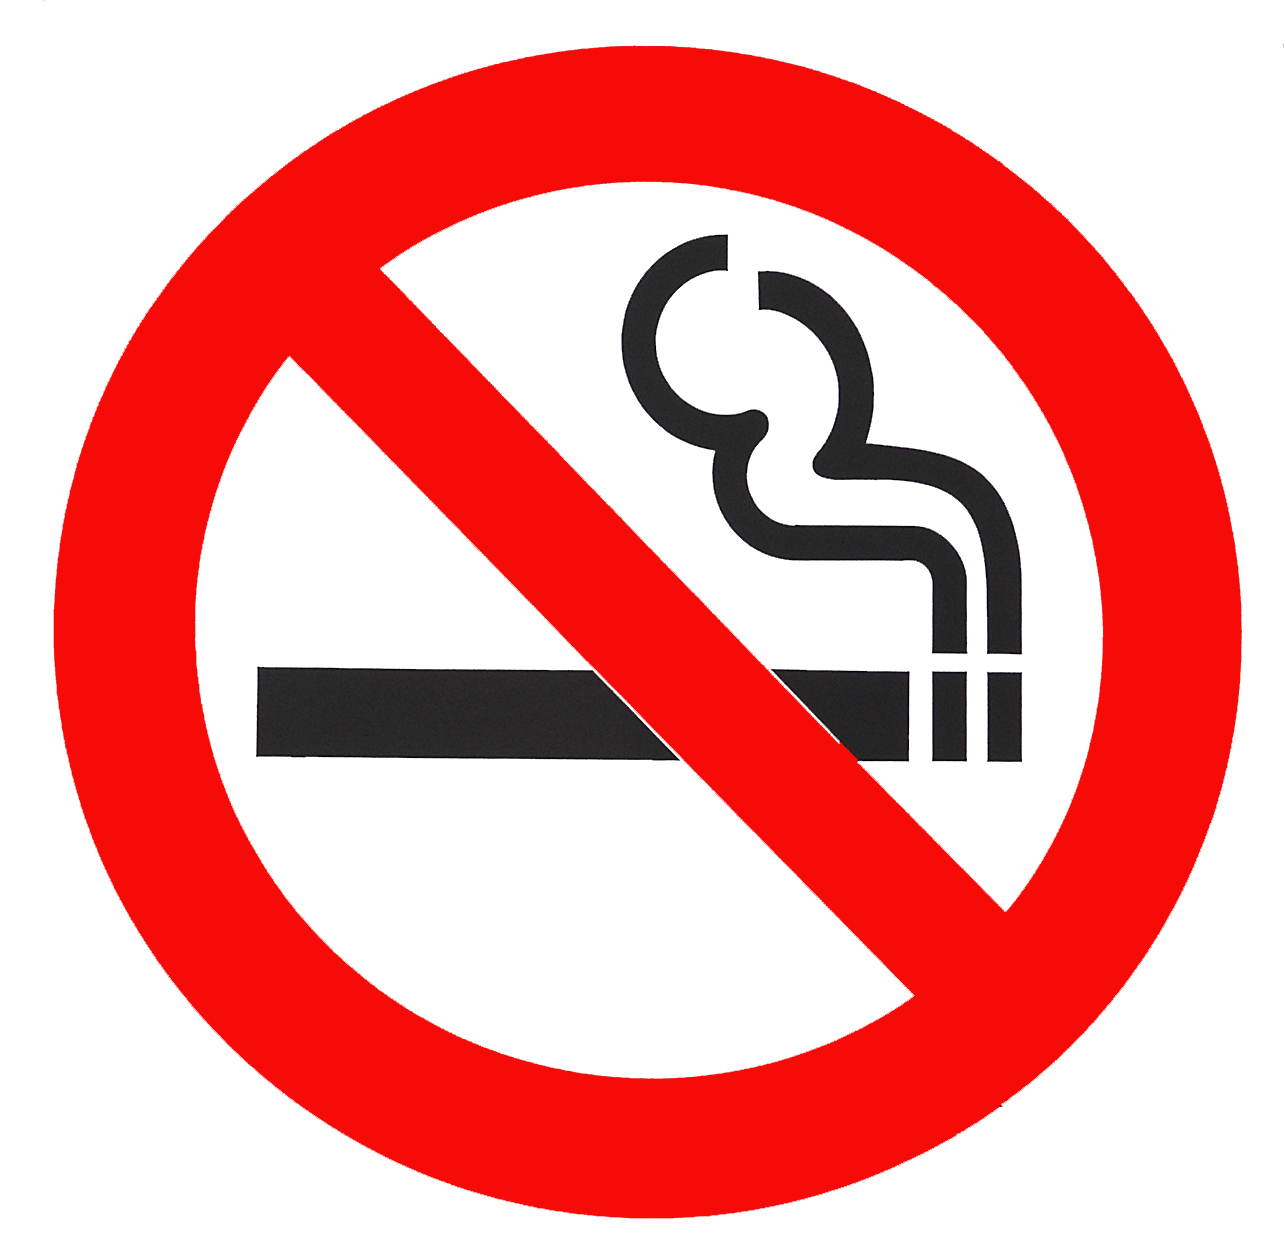 Smoking cessation program starts feb 2 the program freshstart was developed by the american cancer society and is designed to help you buycottarizona